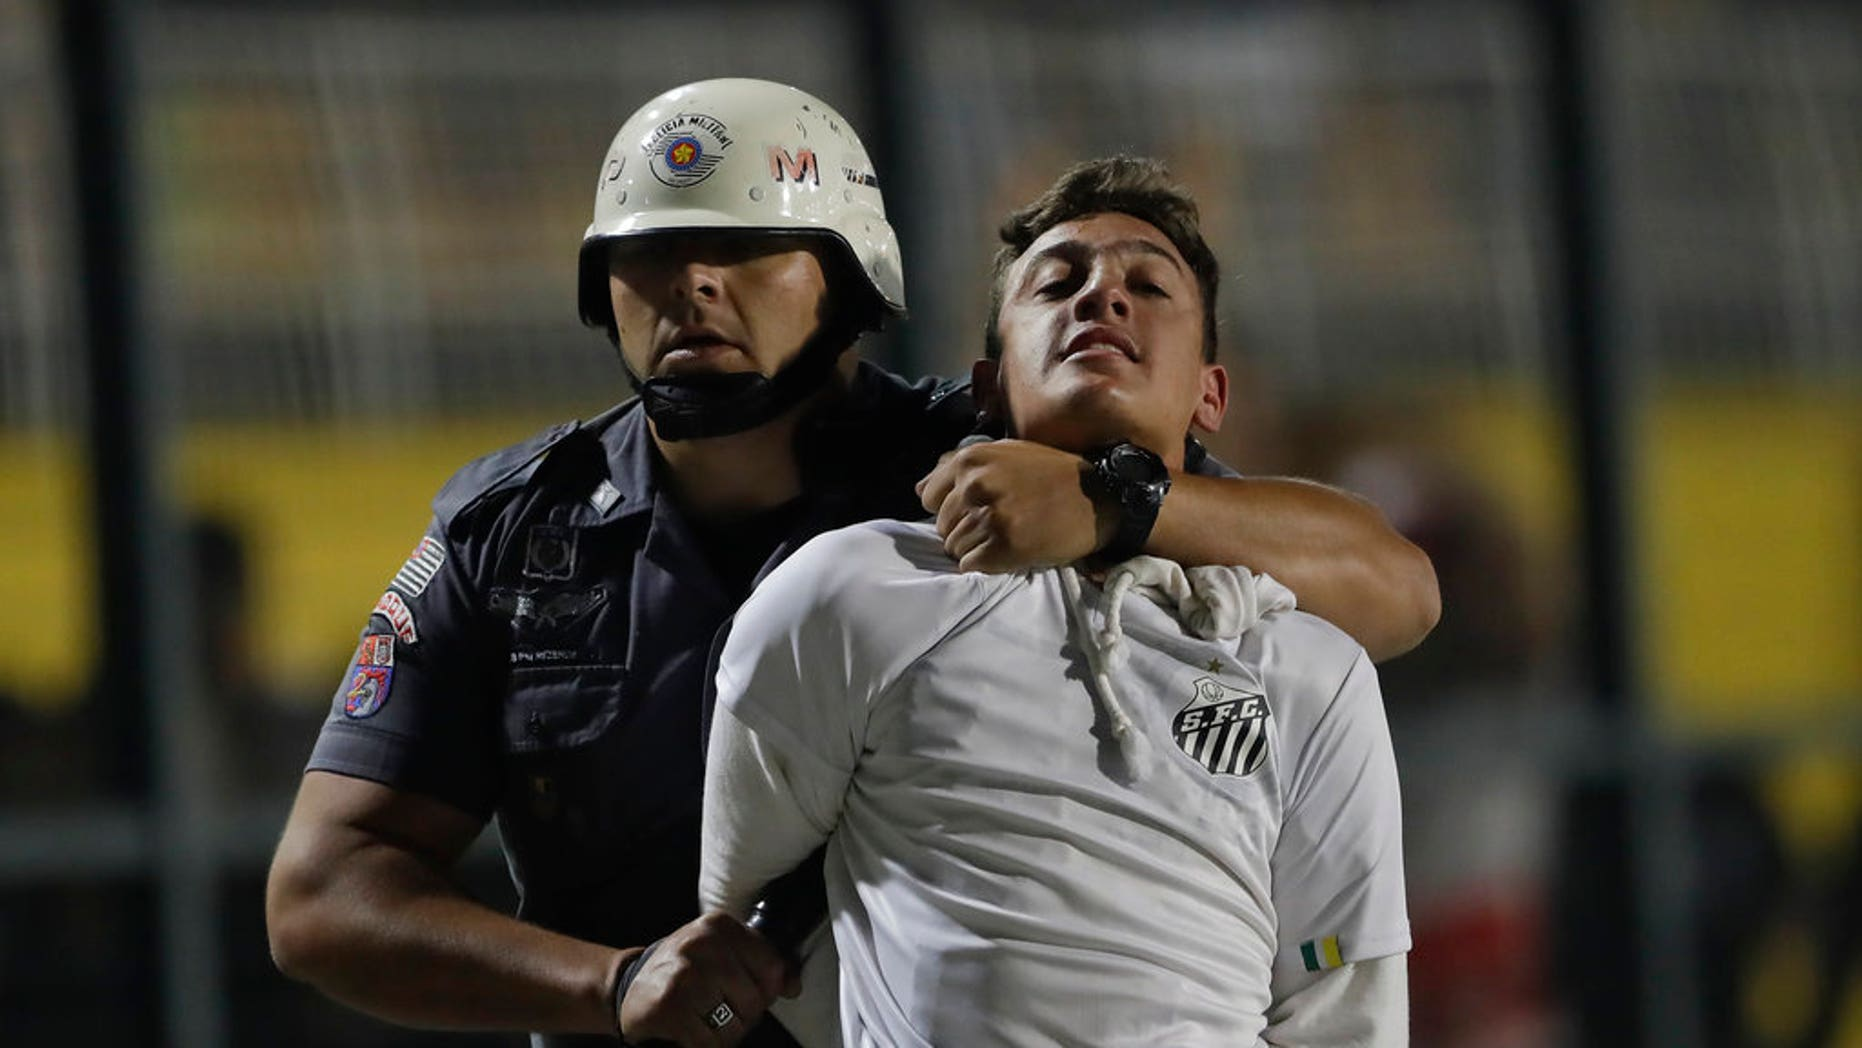 Police clash with soccer fans protesting 3-0 score imposed before match, game abandoned.